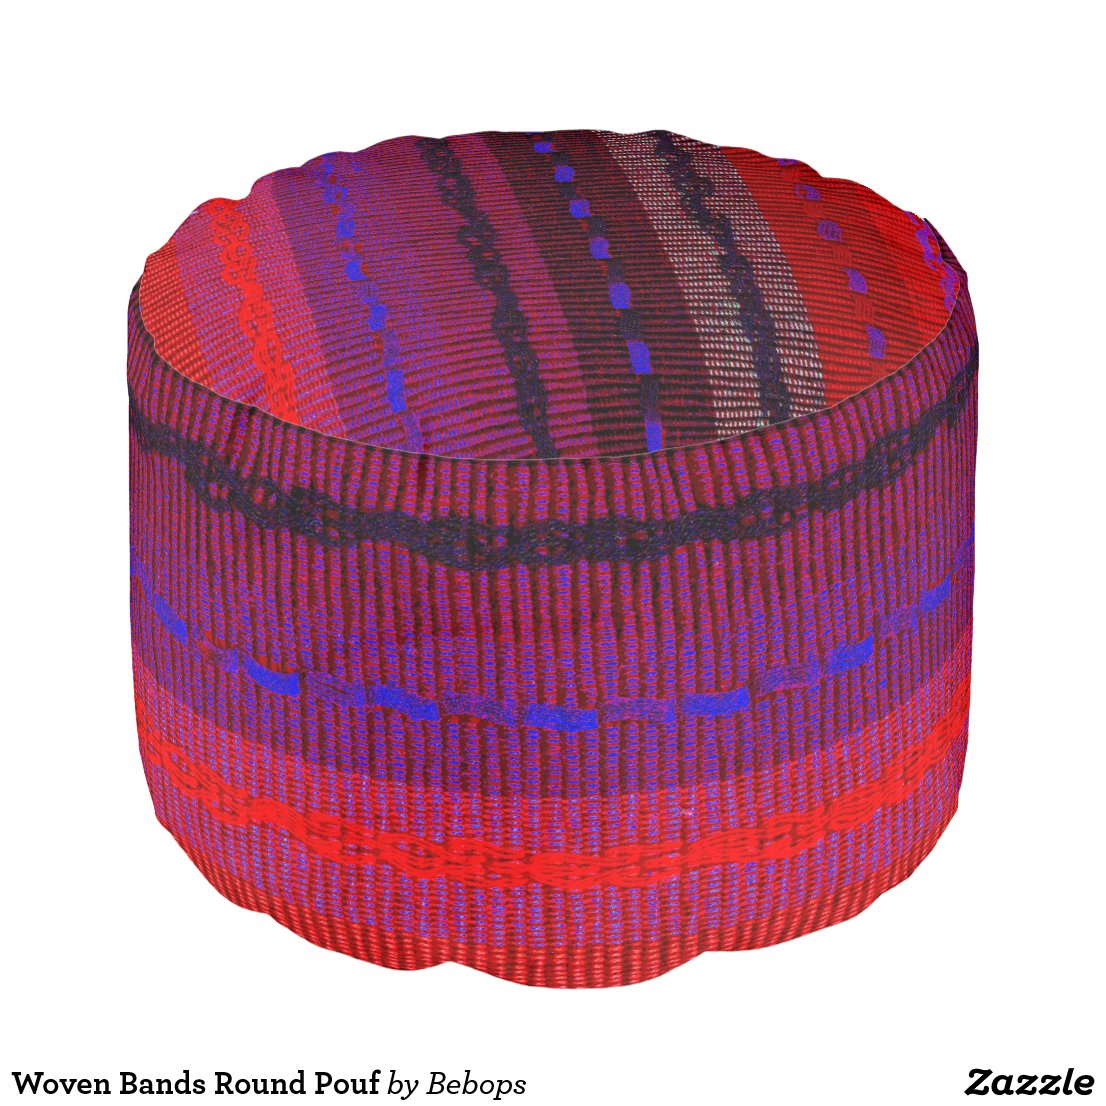 Woven Bands Round Pouf